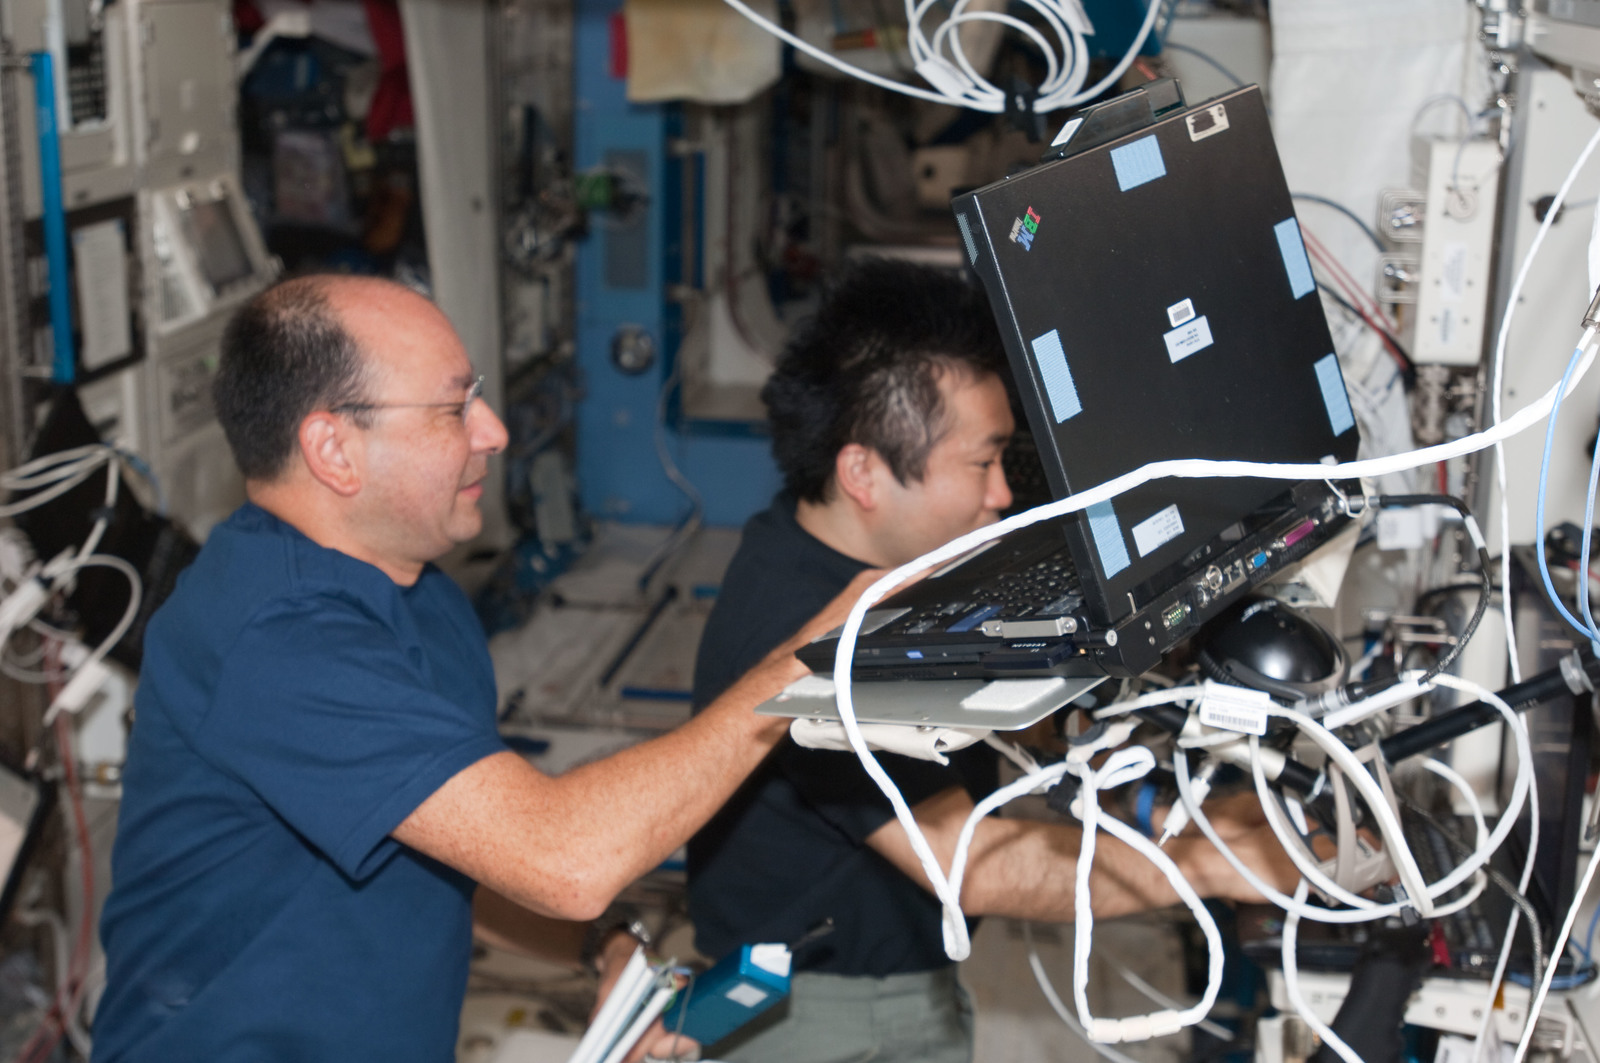 S127E008124 - STS-127 - Polansky and Wakata in the U.S. Laboratory during Joint Operations